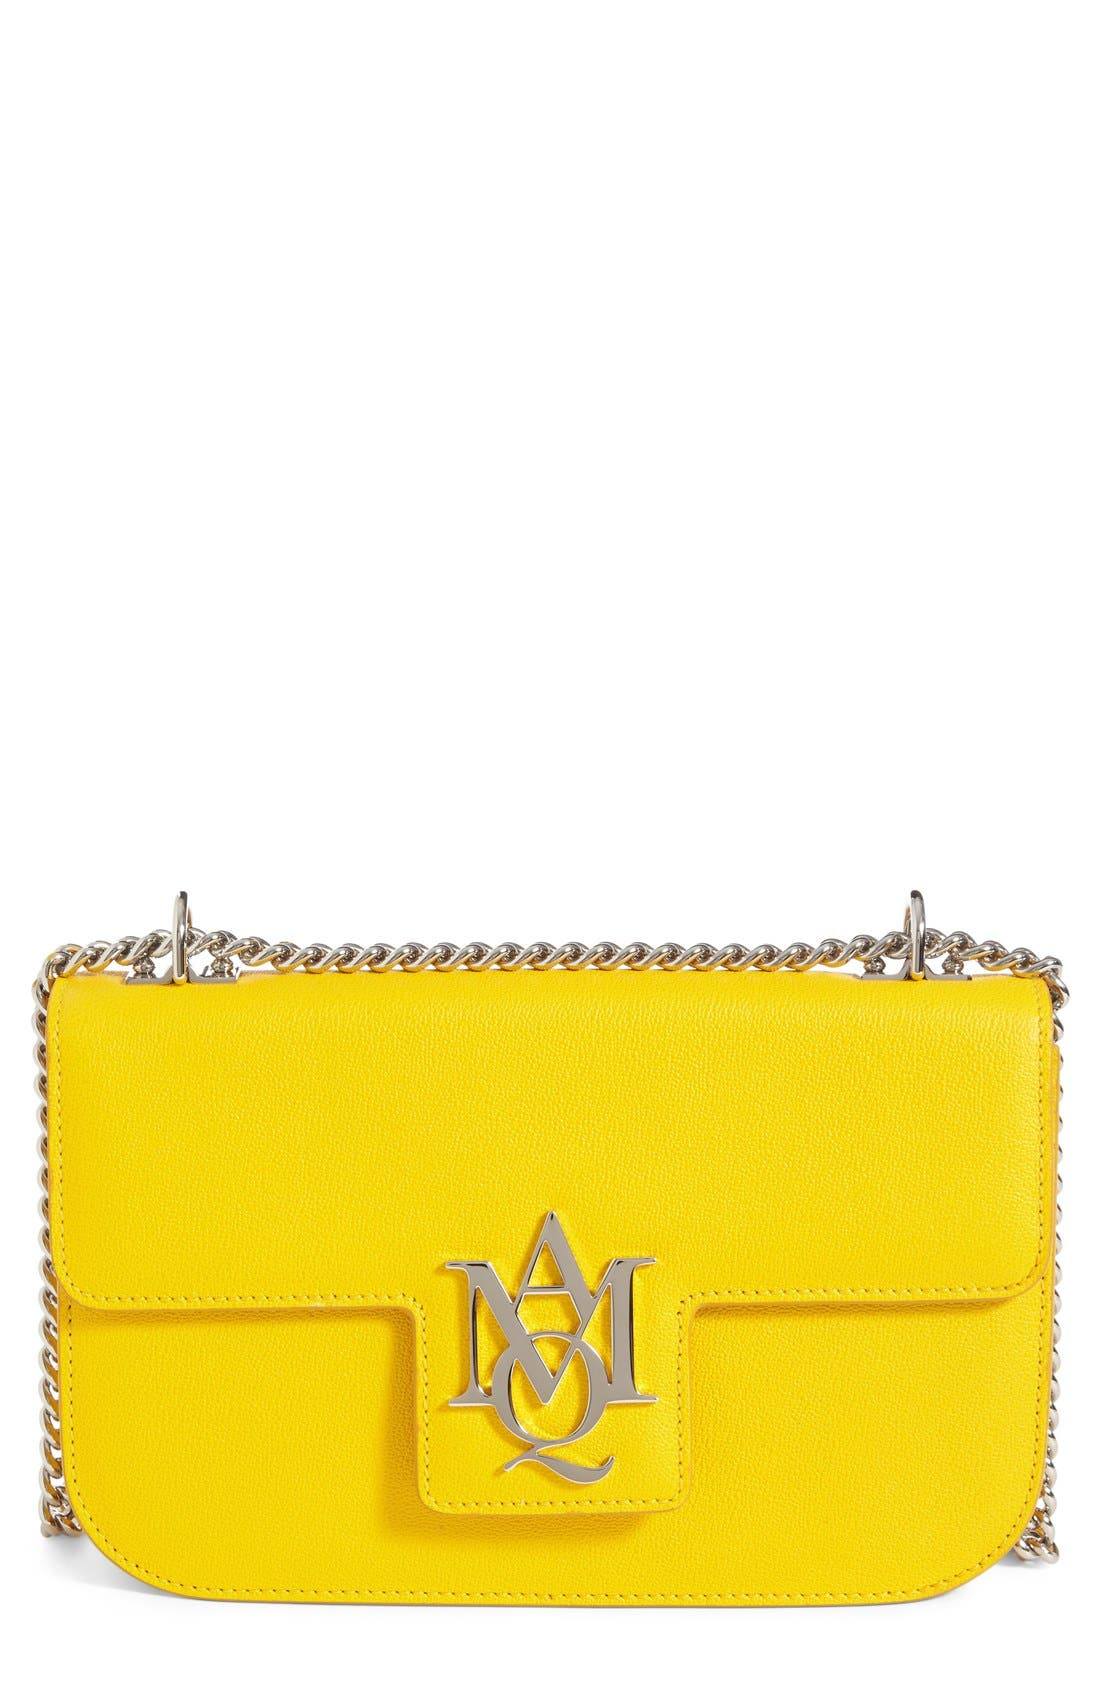 Alternate Image 1 Selected - Alexander McQueen 'Medium Insignia Chain' Calfskin Leather Satchel